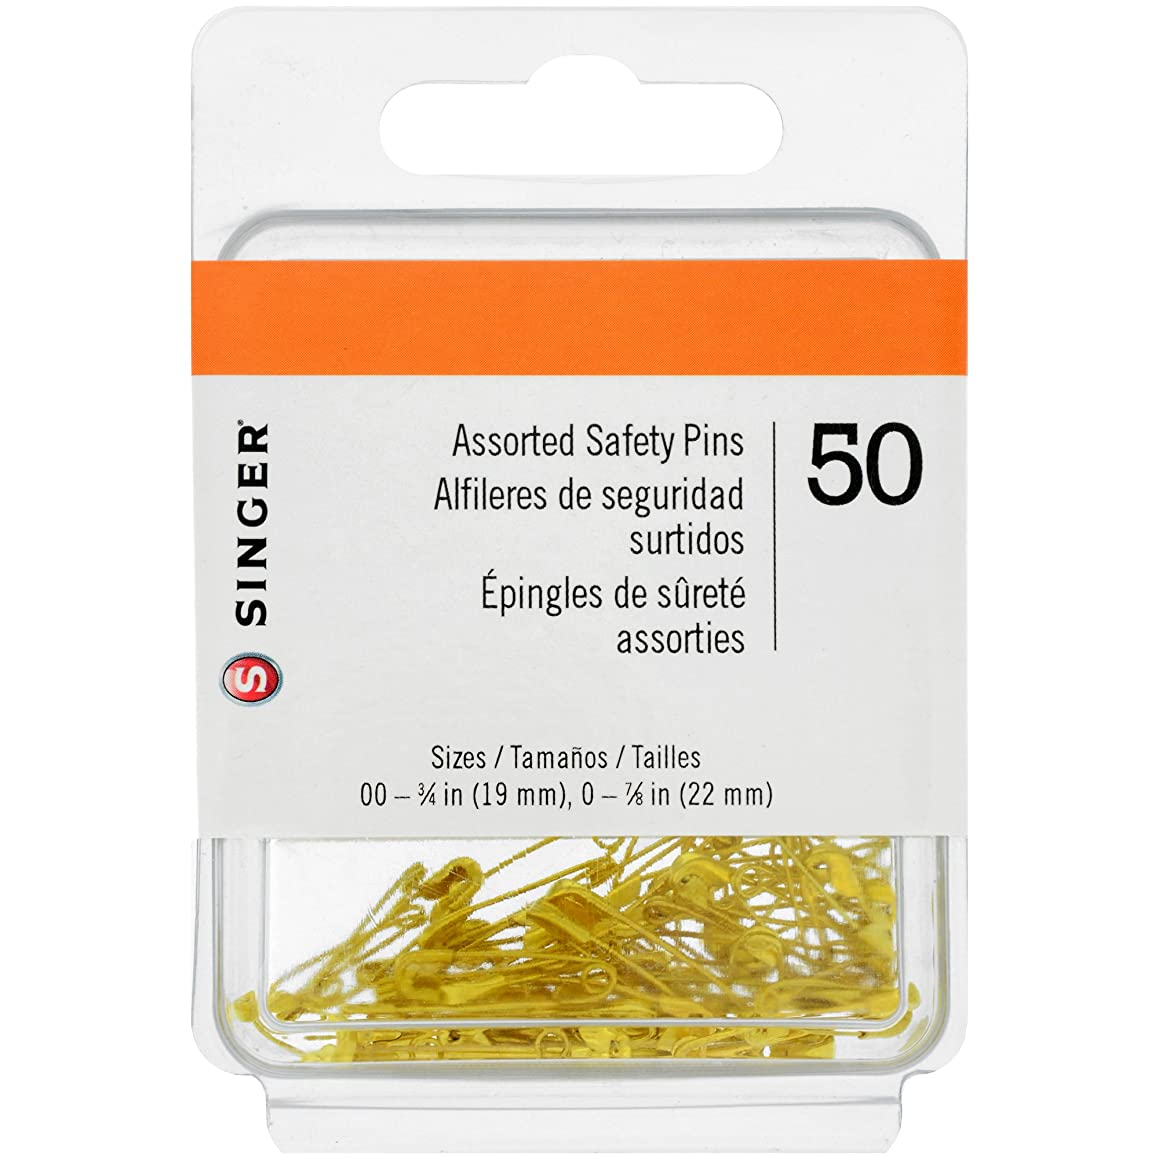 SINGER 00224 Assorted Safety Pins, Multisize, Gilt Plated, 50-Count